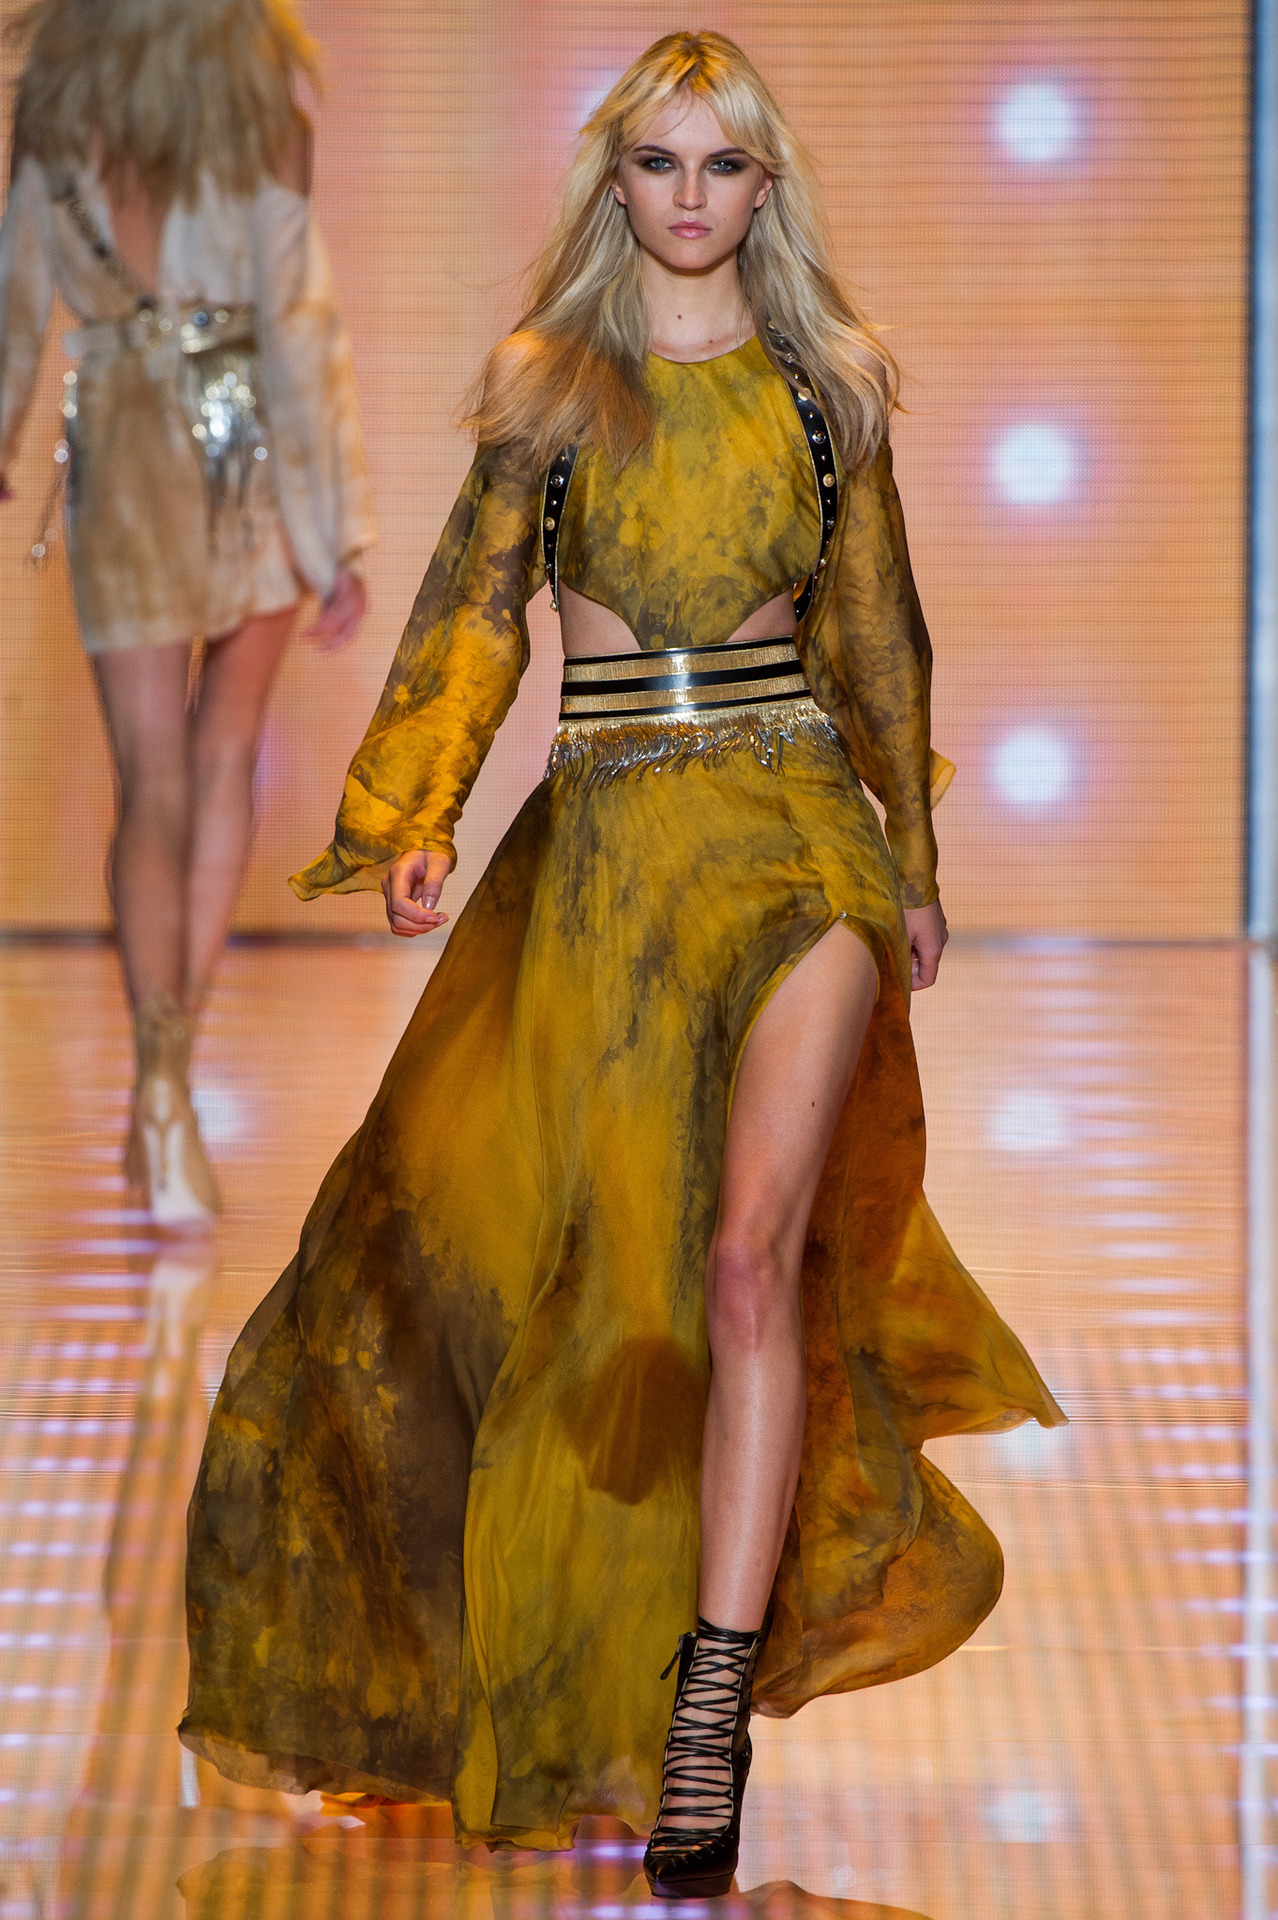 wetheurban:  #MFW: VERSACE SPRING/SUMMER 2013 This season for Versace, Donatella Versace tapped to her inner hyper-feminine sex goddess for inspiration. The collection, presented in Milan today, is filled with delicate sensual touches including lace embellishments with an array chiffon creations taking the lead role. Pale blues, greens, and oranges dominated the collection - taking form in lingerie pieces, cocktail dresses, and (our favorite) long, floating evening gowns. Love! Ol' girls still got it!